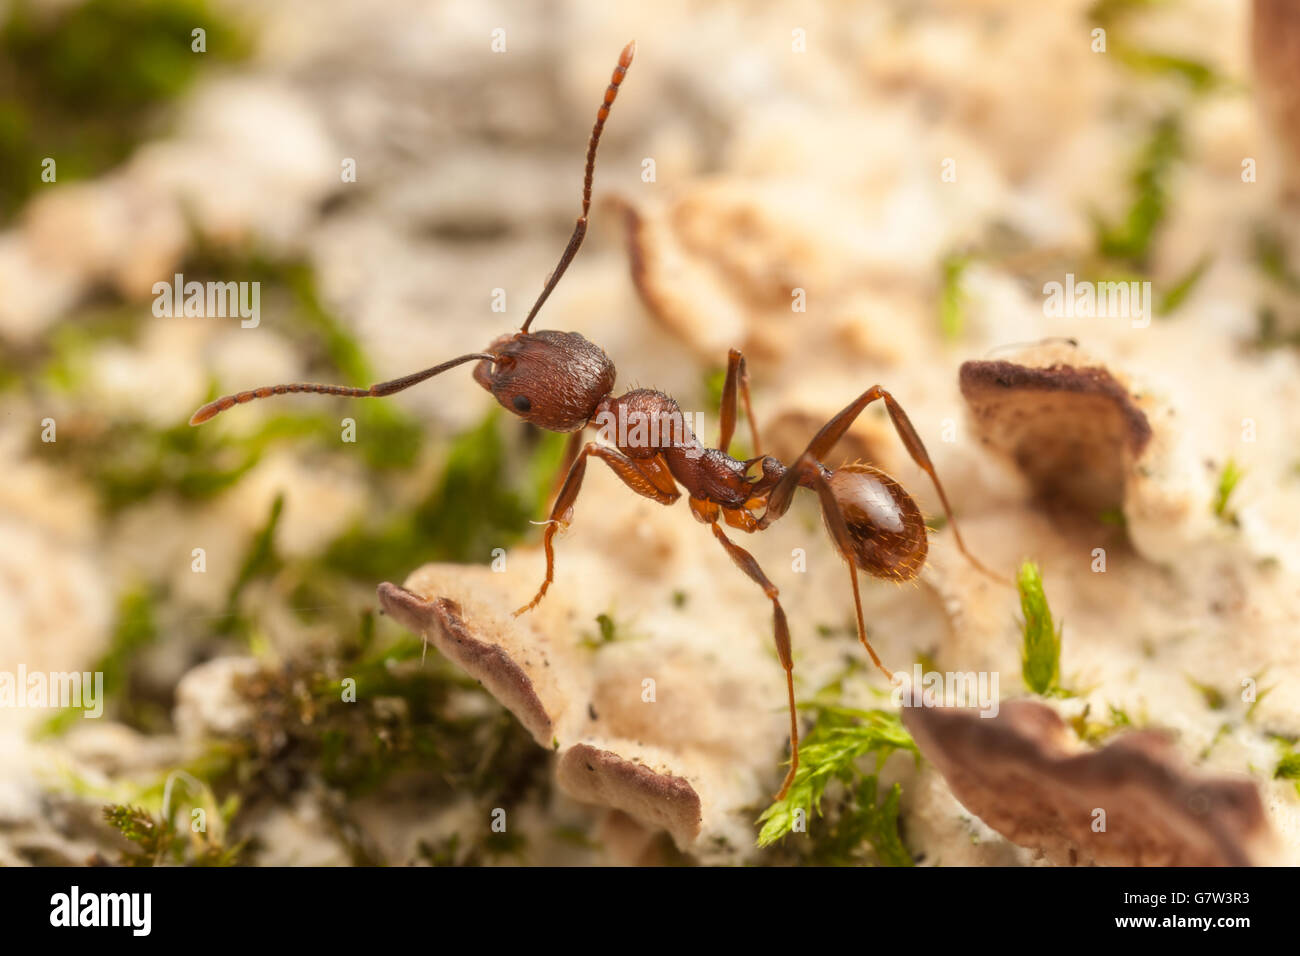 A Spine-waisted Ant (Aphaenogaster fulva) worker explores the fungus and moss covered surface of a fallen dead tree. - Stock Image